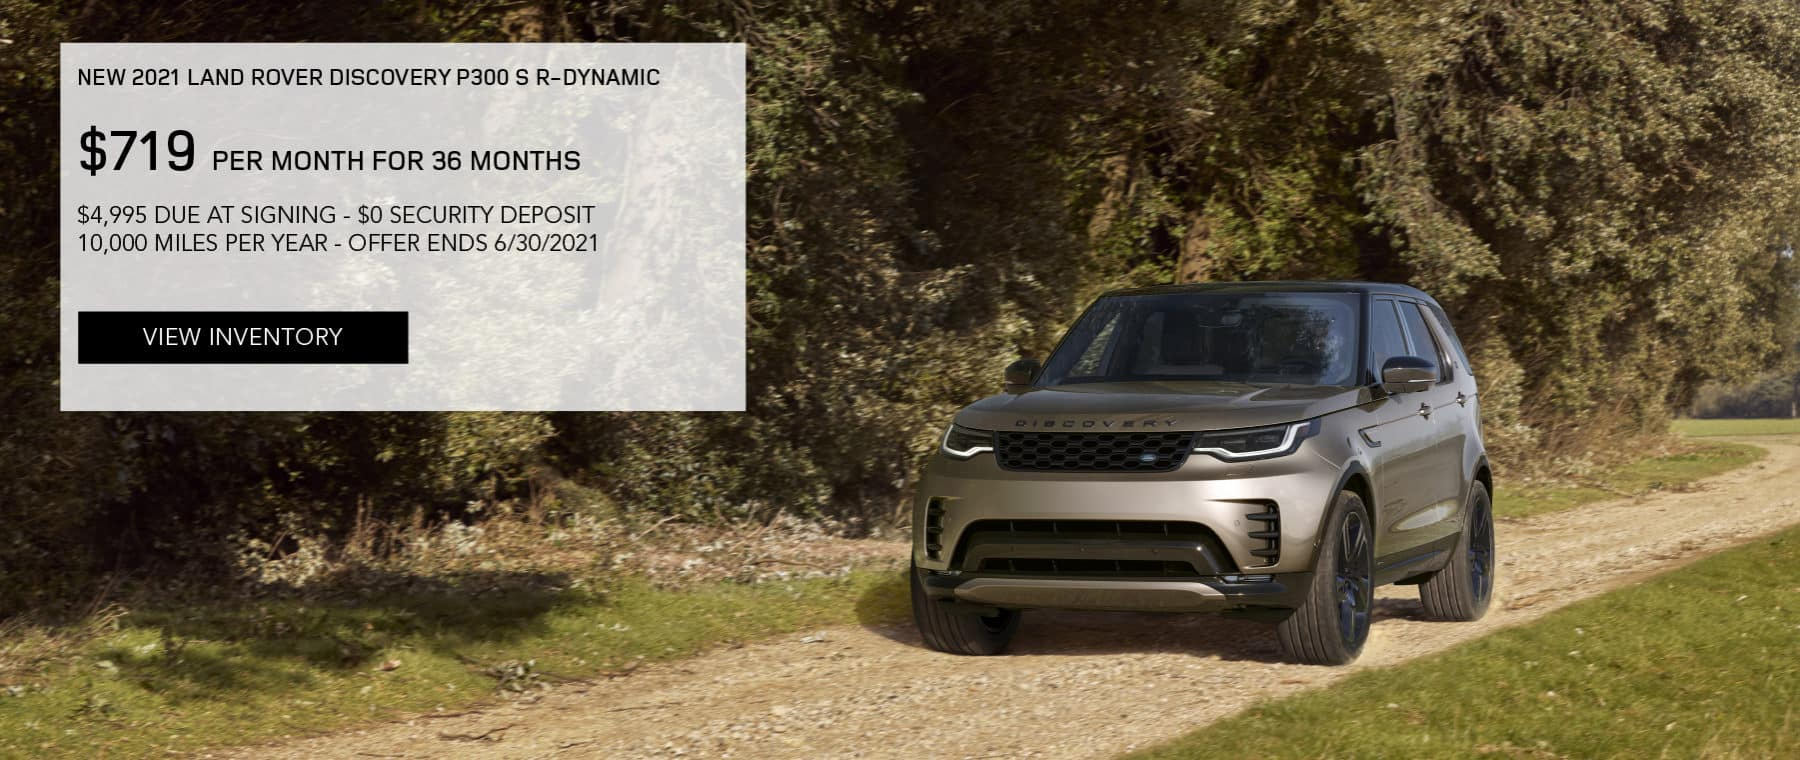 NEW 2021 LAND ROVER DISCOVERY P300 S R-DYNAMIC. $719 PER MONTH. 36 MONTH LEASE TERM. $4,995 CASH DUE AT SIGNING. $0 SECURITY DEPOSIT. 10,000 MILES PER YEAR. EXCLUDES RETAILER FEES, TAXES, TITLE AND REGISTRATION FEES, PROCESSING FEE AND ANY EMISSION TESTING CHARGE. ENDS 6/30/2021. VIEW INVENTORY. SILVER LAND ROVER DISCOVERY DRIVING DOWN DIRT ROAD.